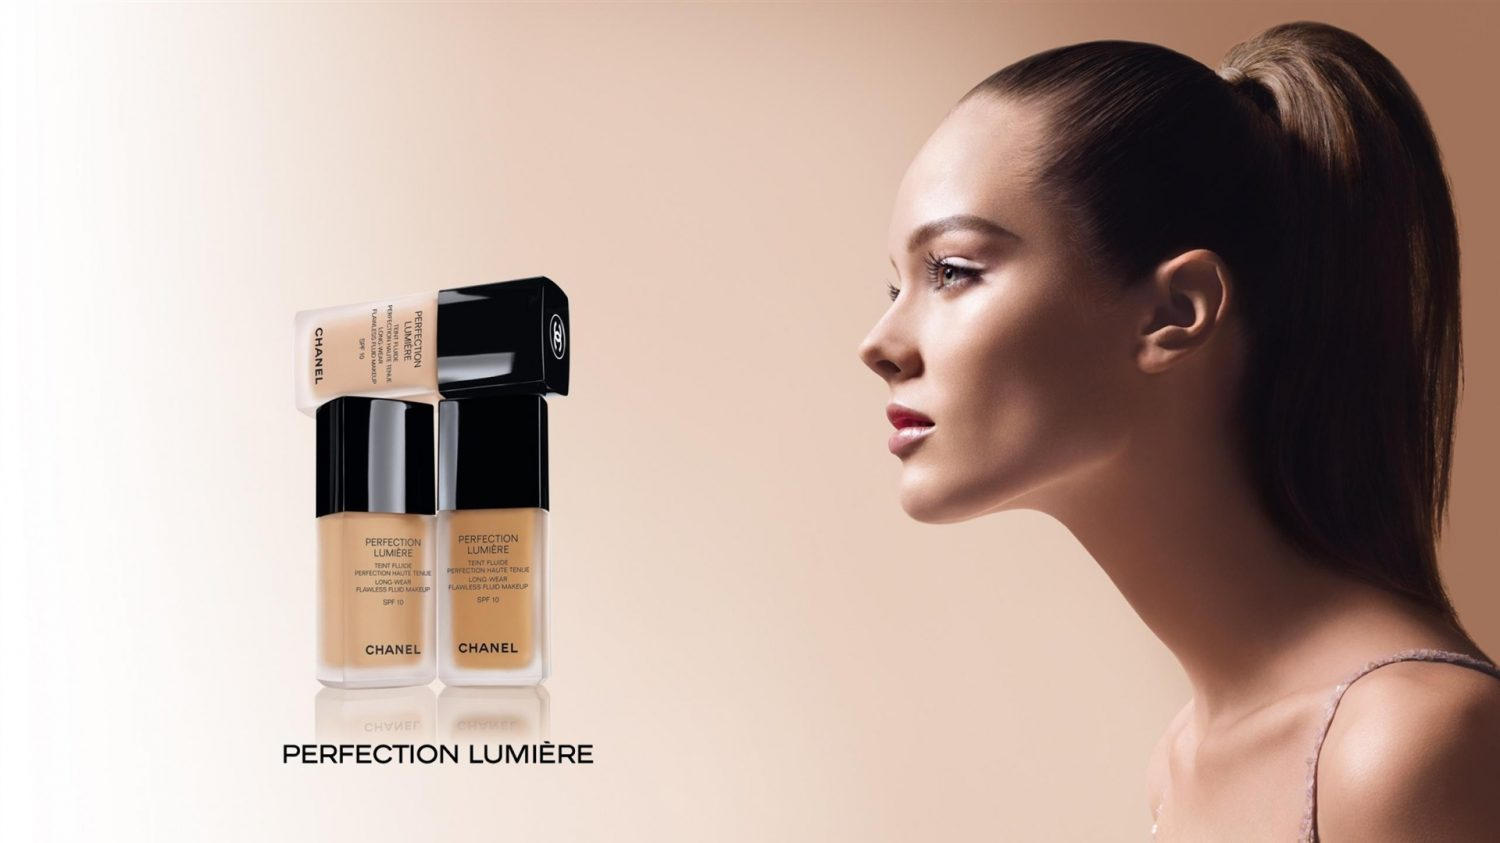 cropped-Chanel_girl_foundation_excellence-2012_brand_advertising_Wallpaper_1920x1080.jpg